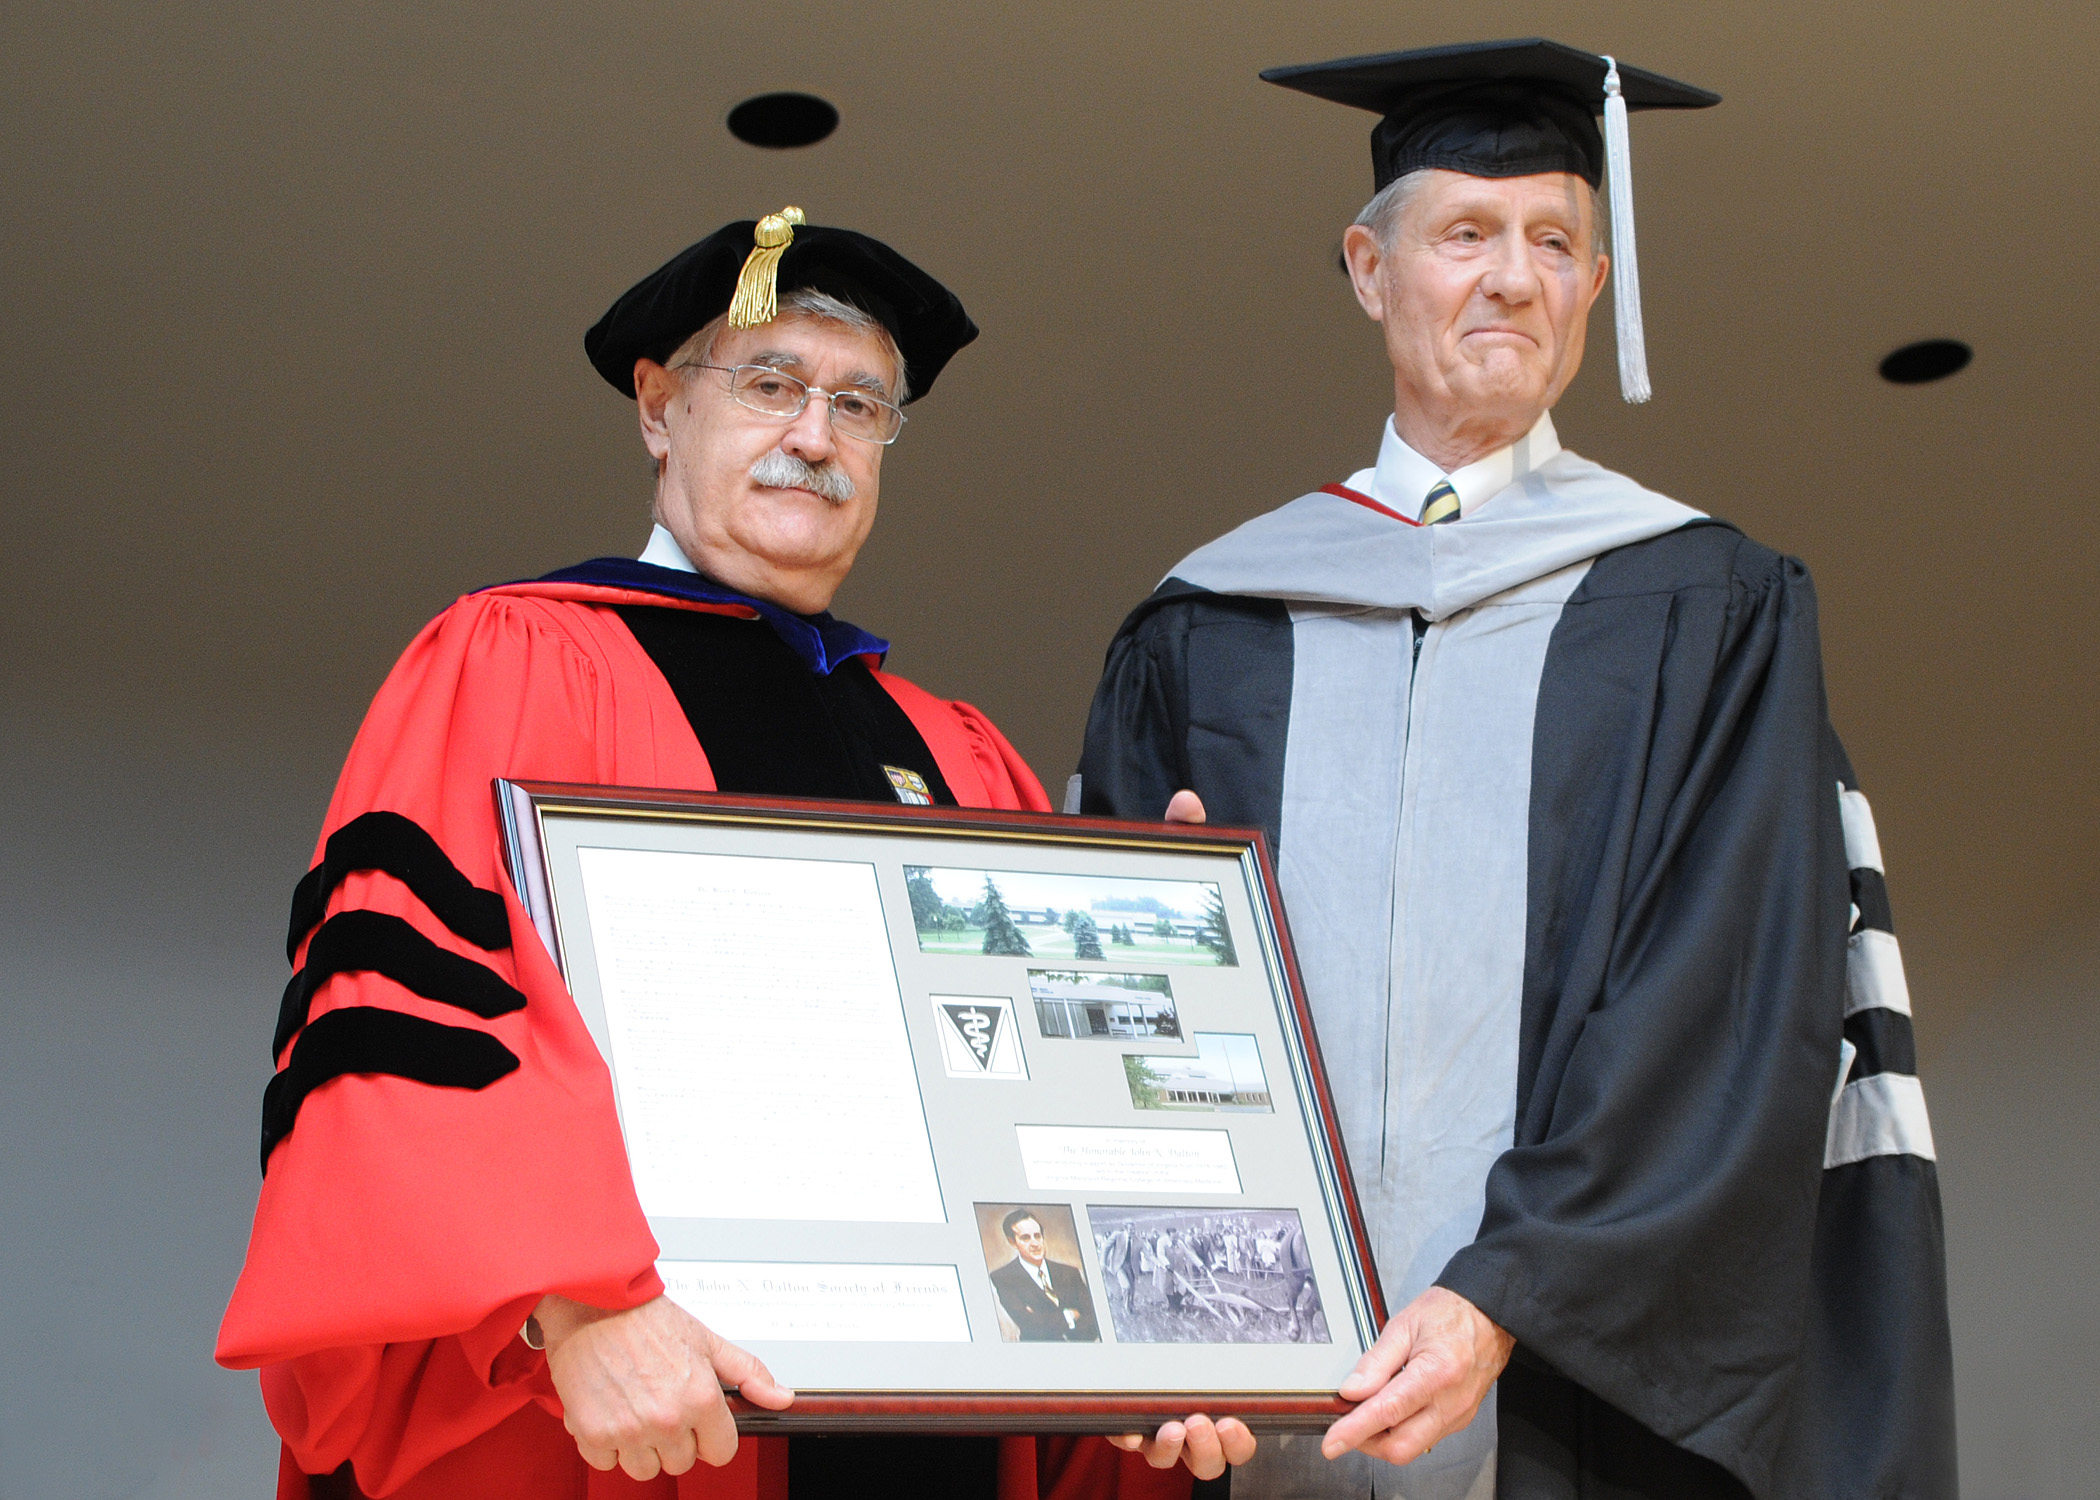 Dean Gerhardt Schurig (left) and Dr. Kent Roberts